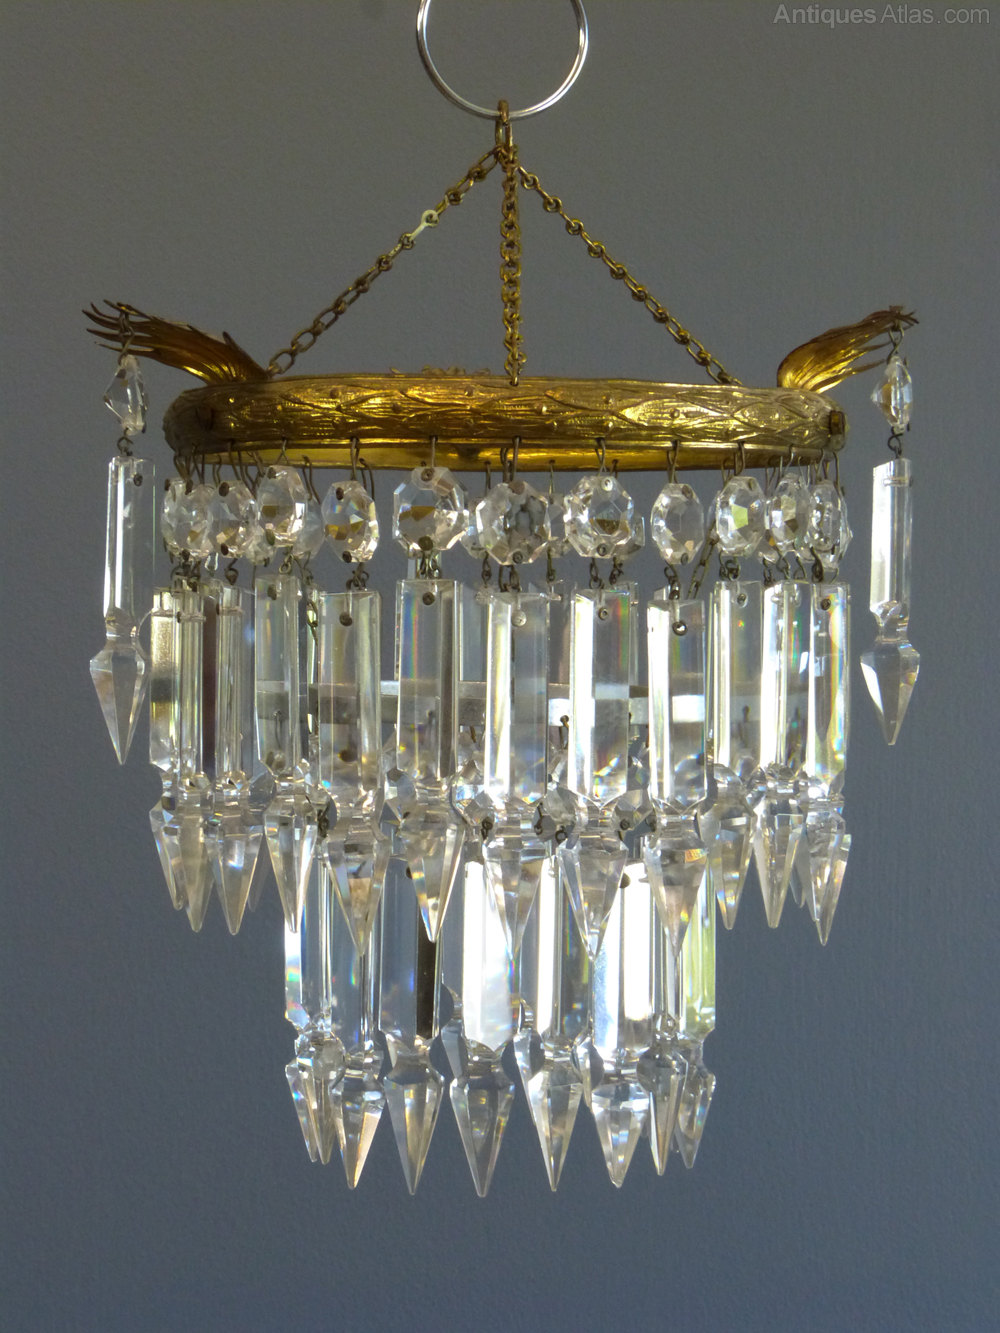 Antiques atlas 1930s small albert drop chandelier 1930s small albert drop chandelier antique chandeliers chandelier cut glass aloadofball Gallery